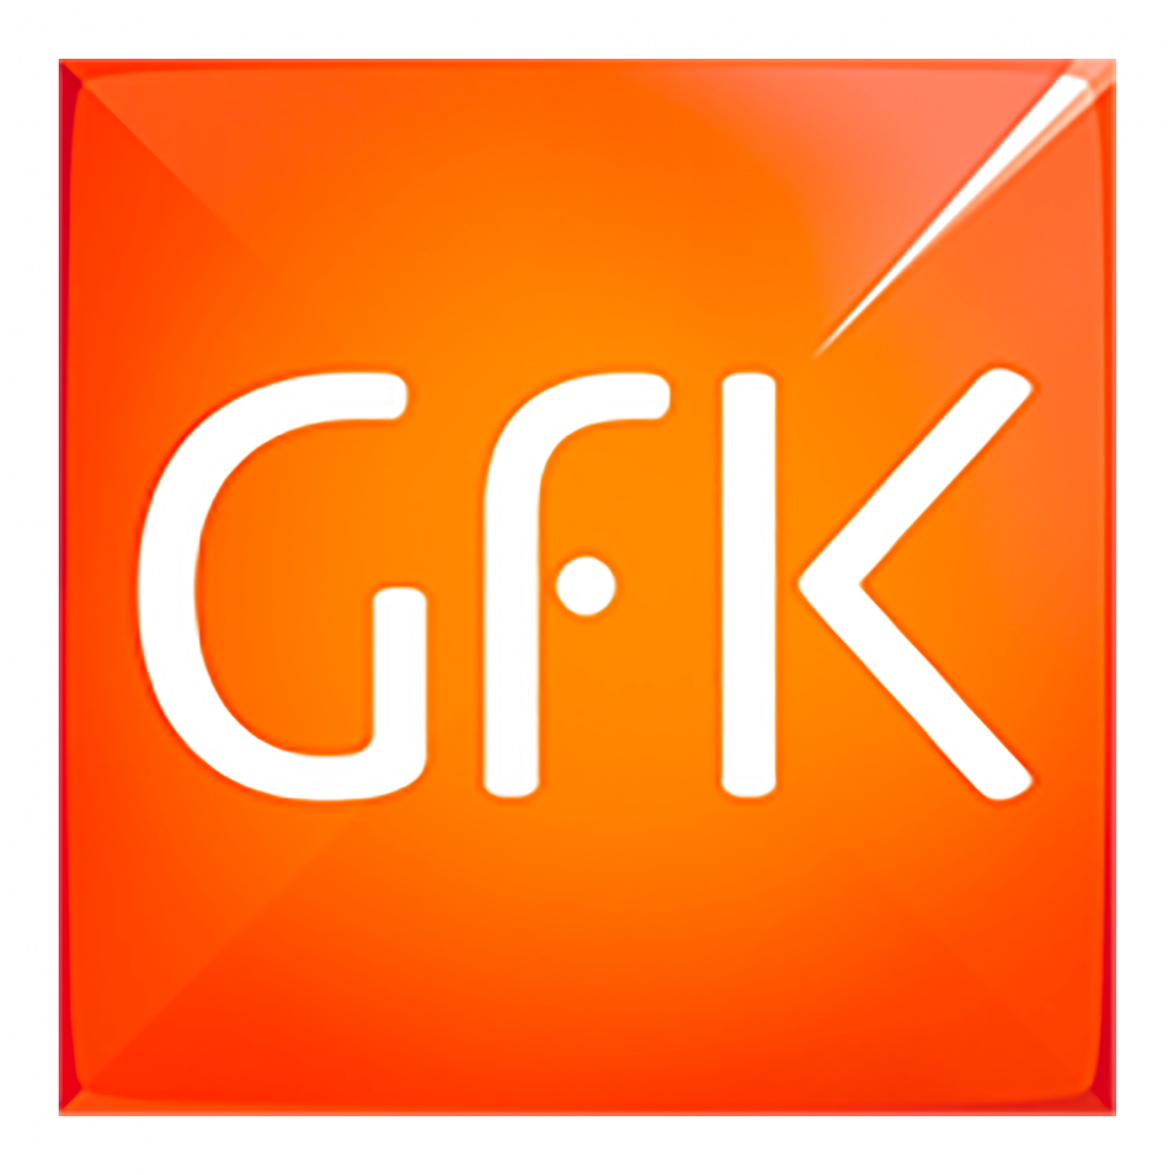 Angèle Von kiss - Mes clients - Gfk Custom Research France